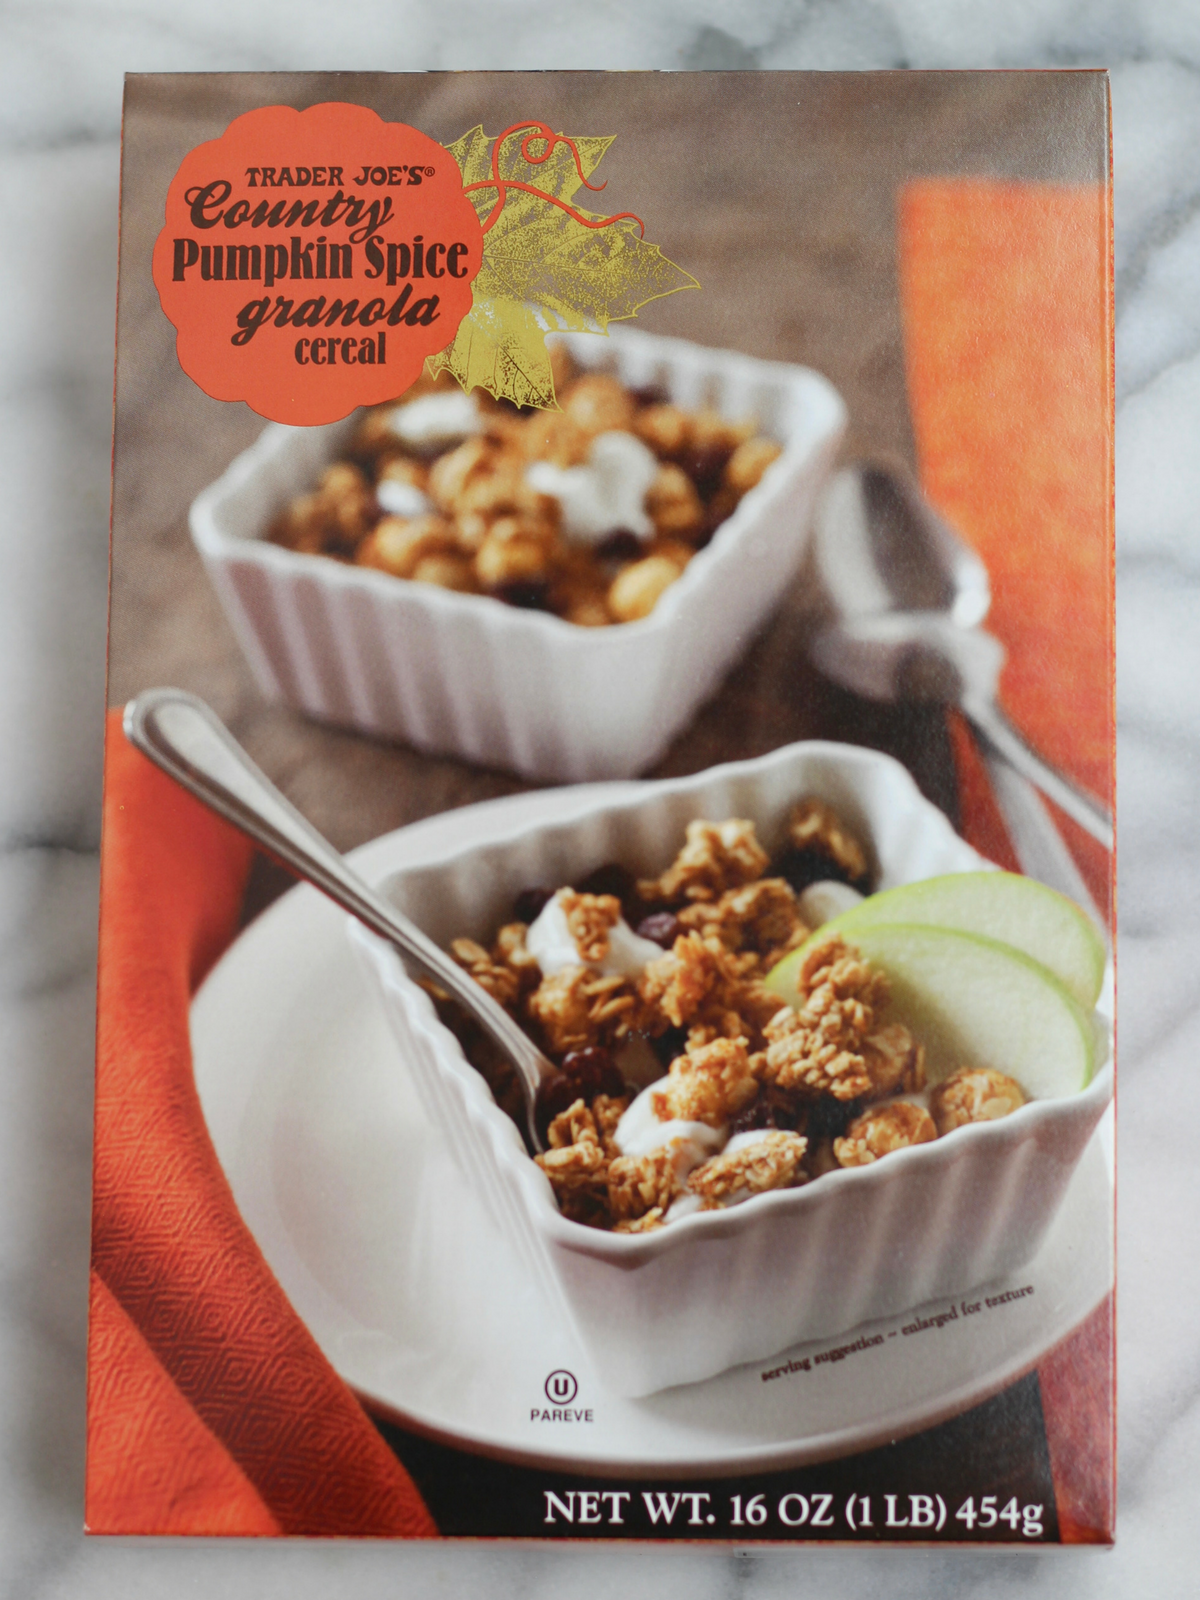 Pumpkin Spice Granola at Trader Joe's